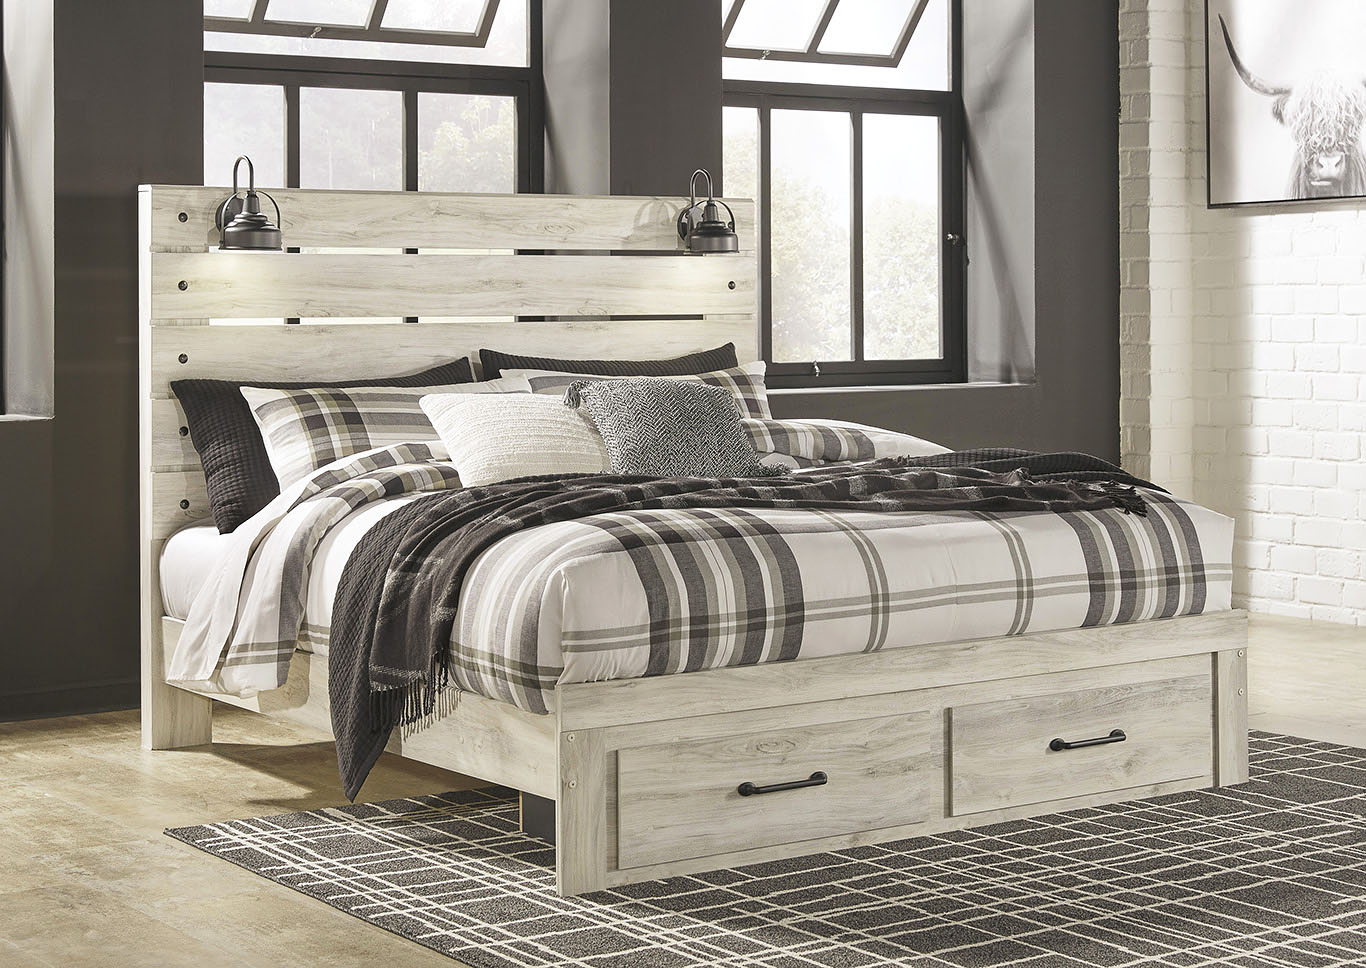 Cambeck King Storage Bed,Signature Design By Ashley